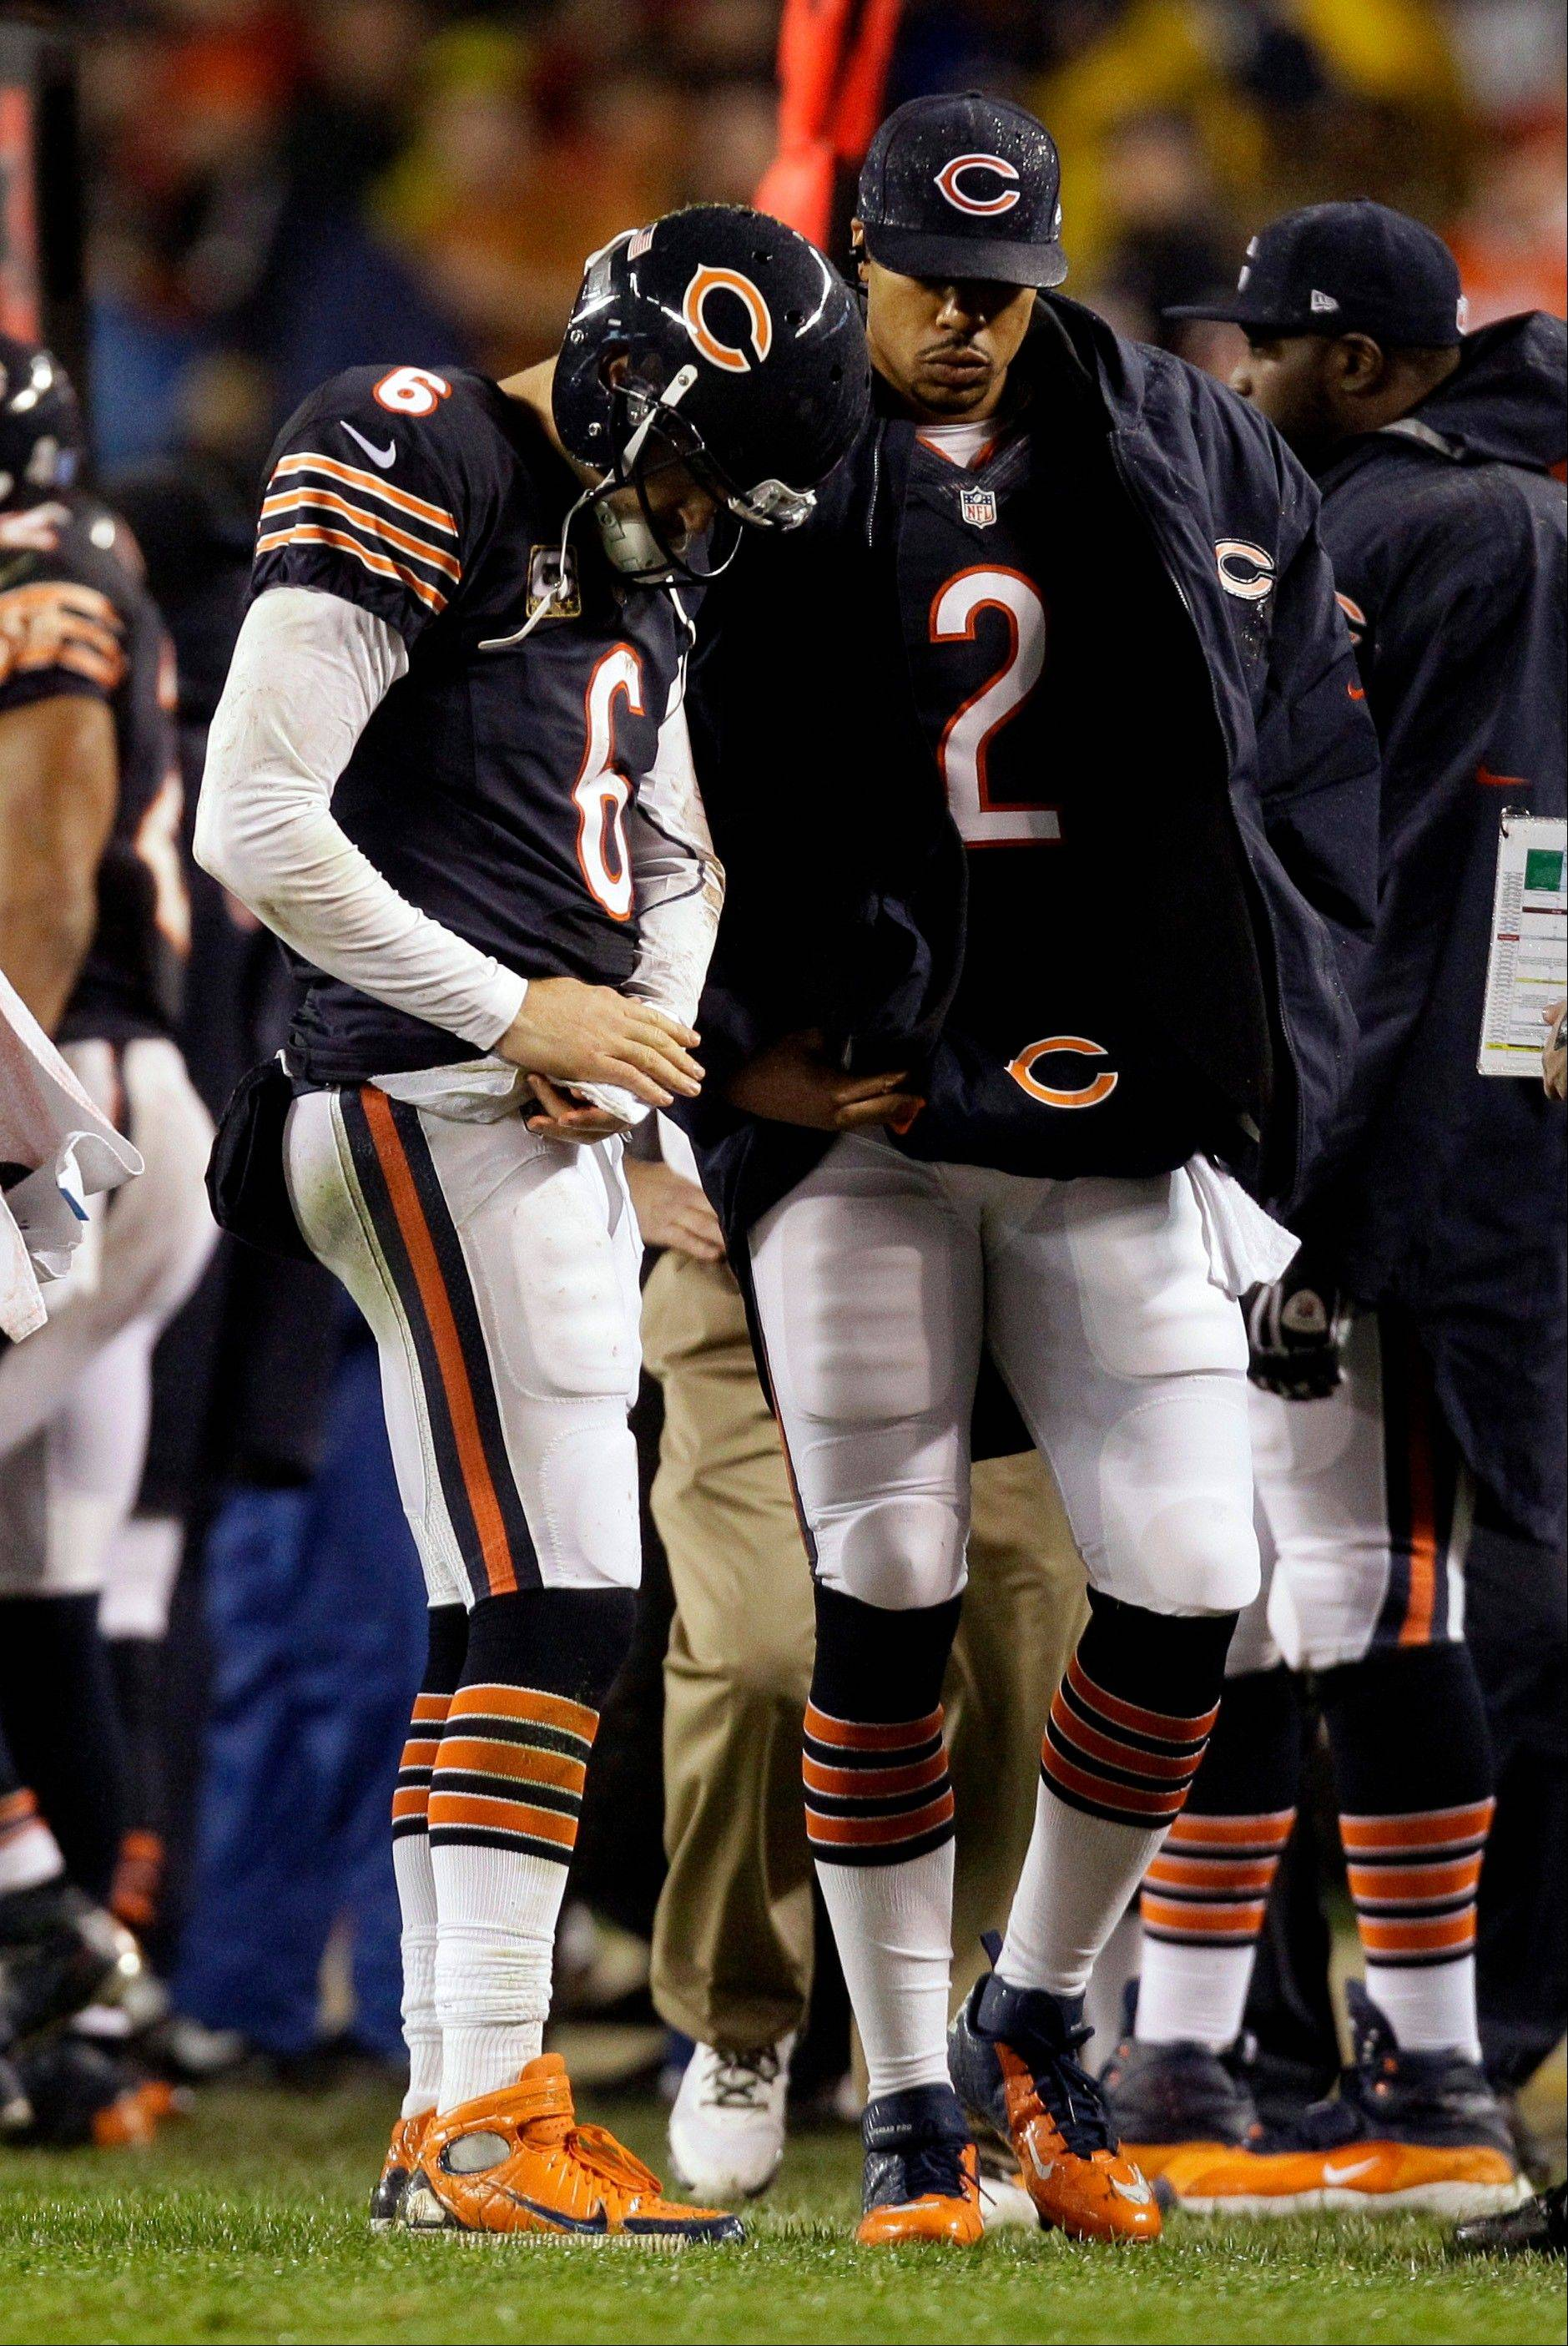 Bears quarterback Jay Cutler talks with backup quarterback Jason Campbell (2) after Cutler took a late hit from Houston linebacker Tim Dobbins in the first half of Sunday's 13-6 loss to the Texans.